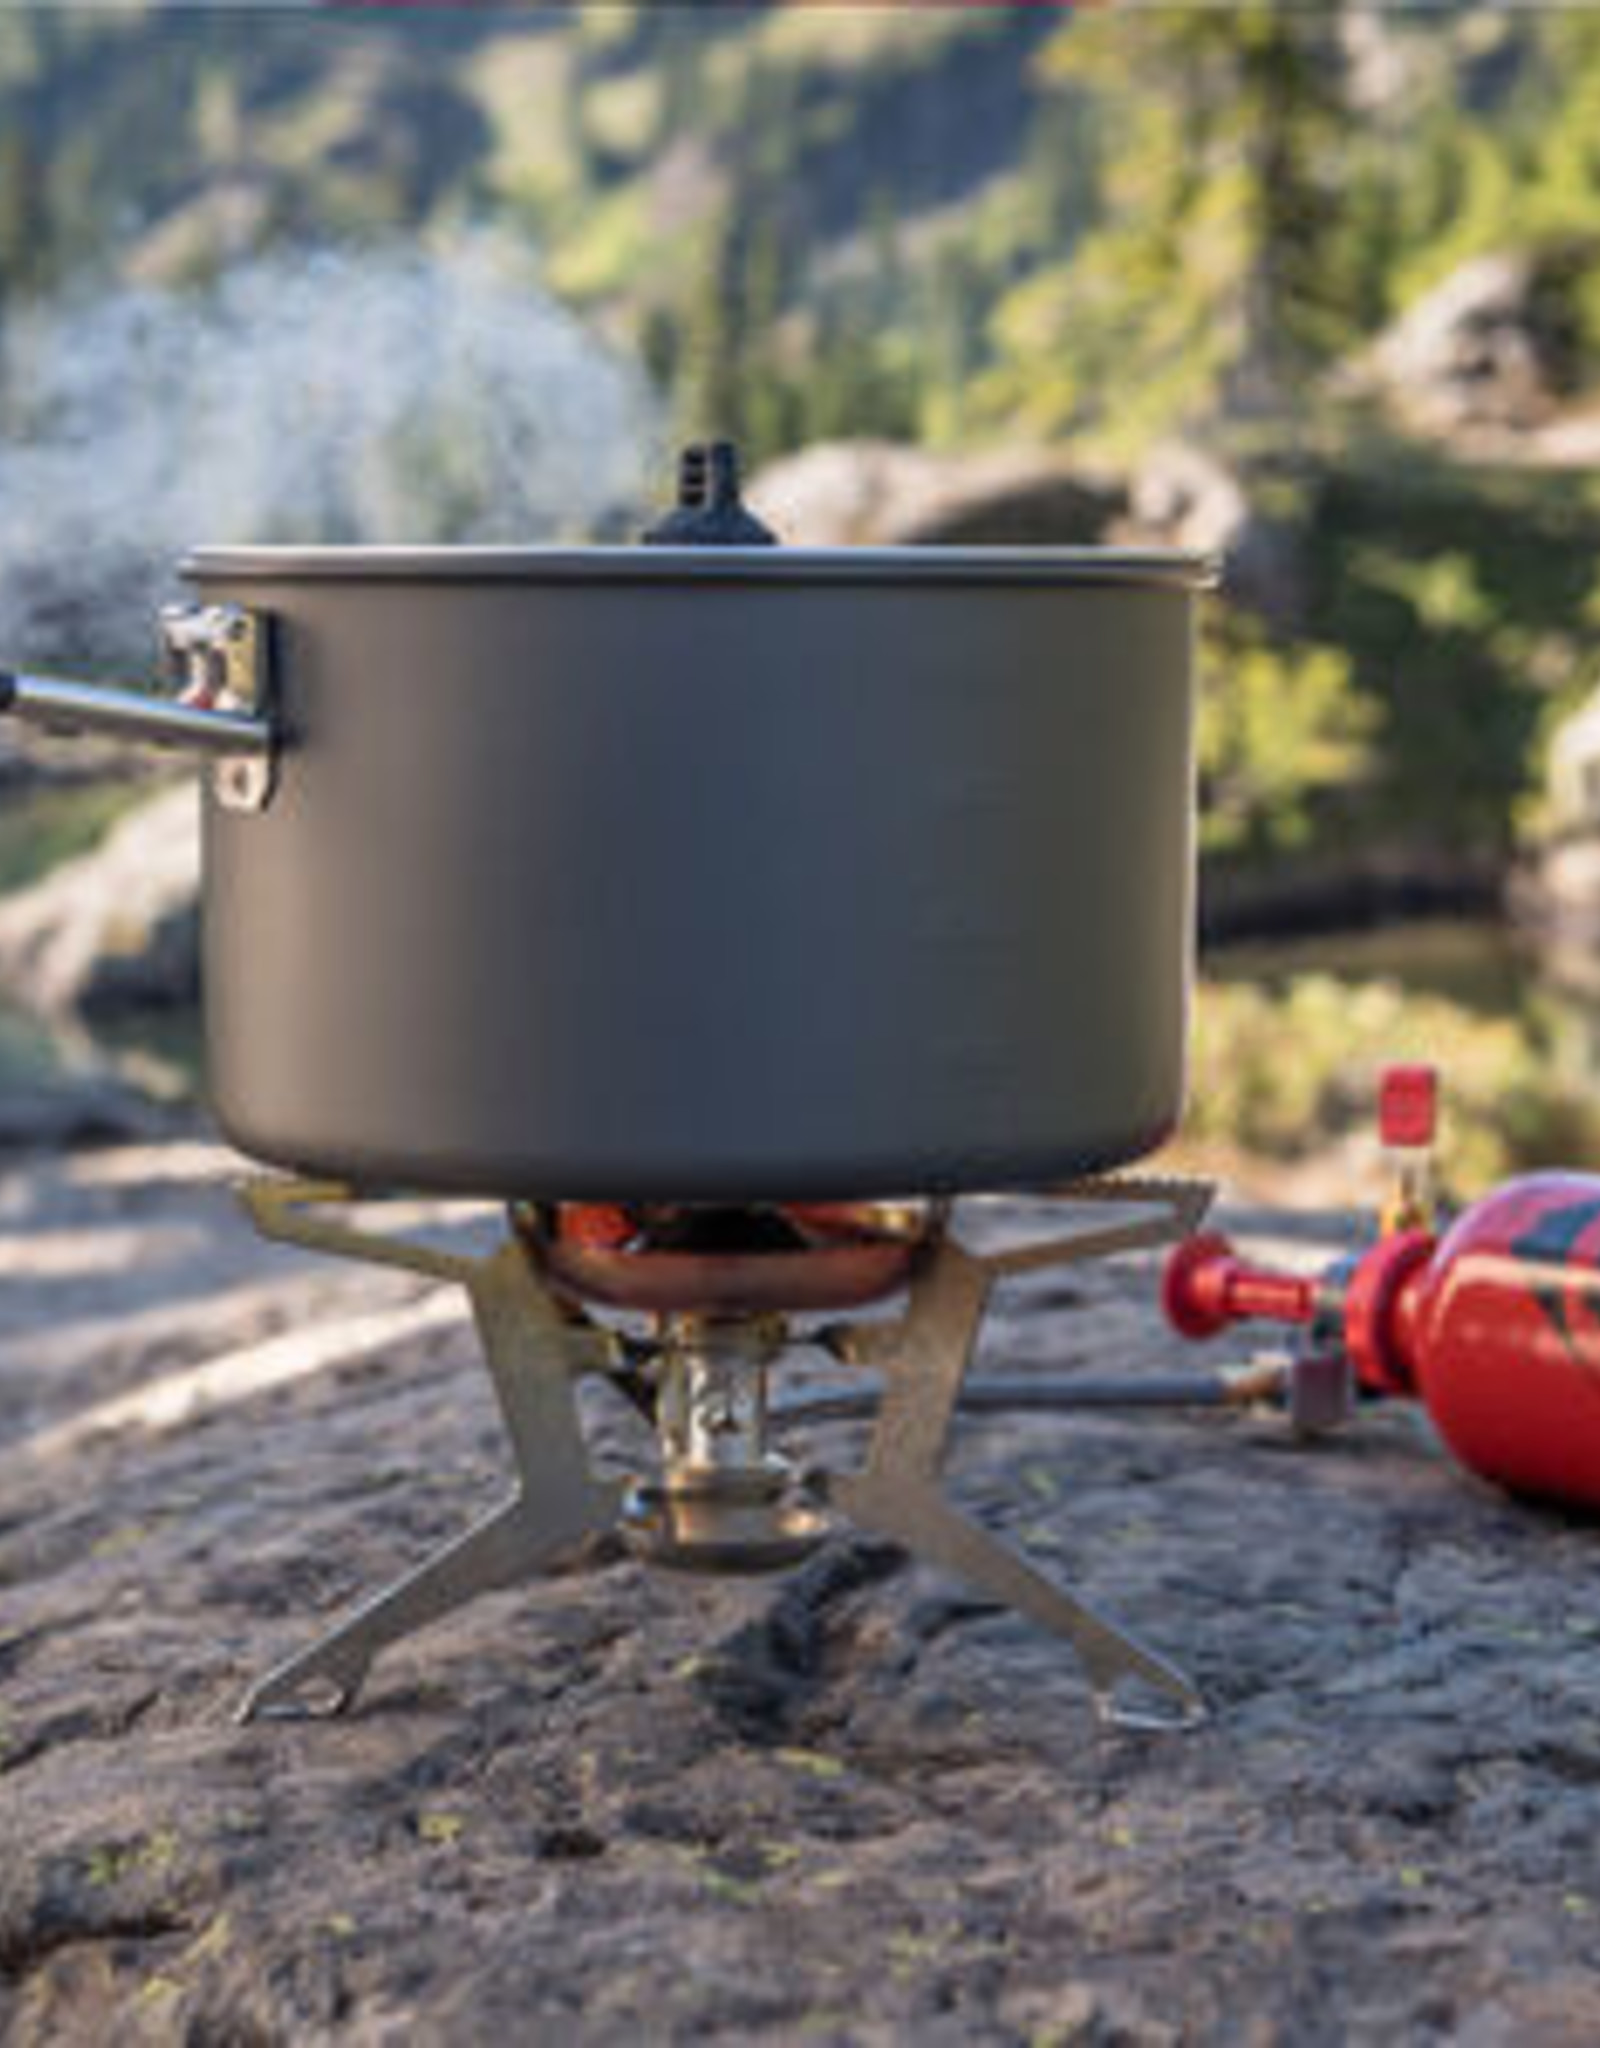 MSR WhisperLite International Stove